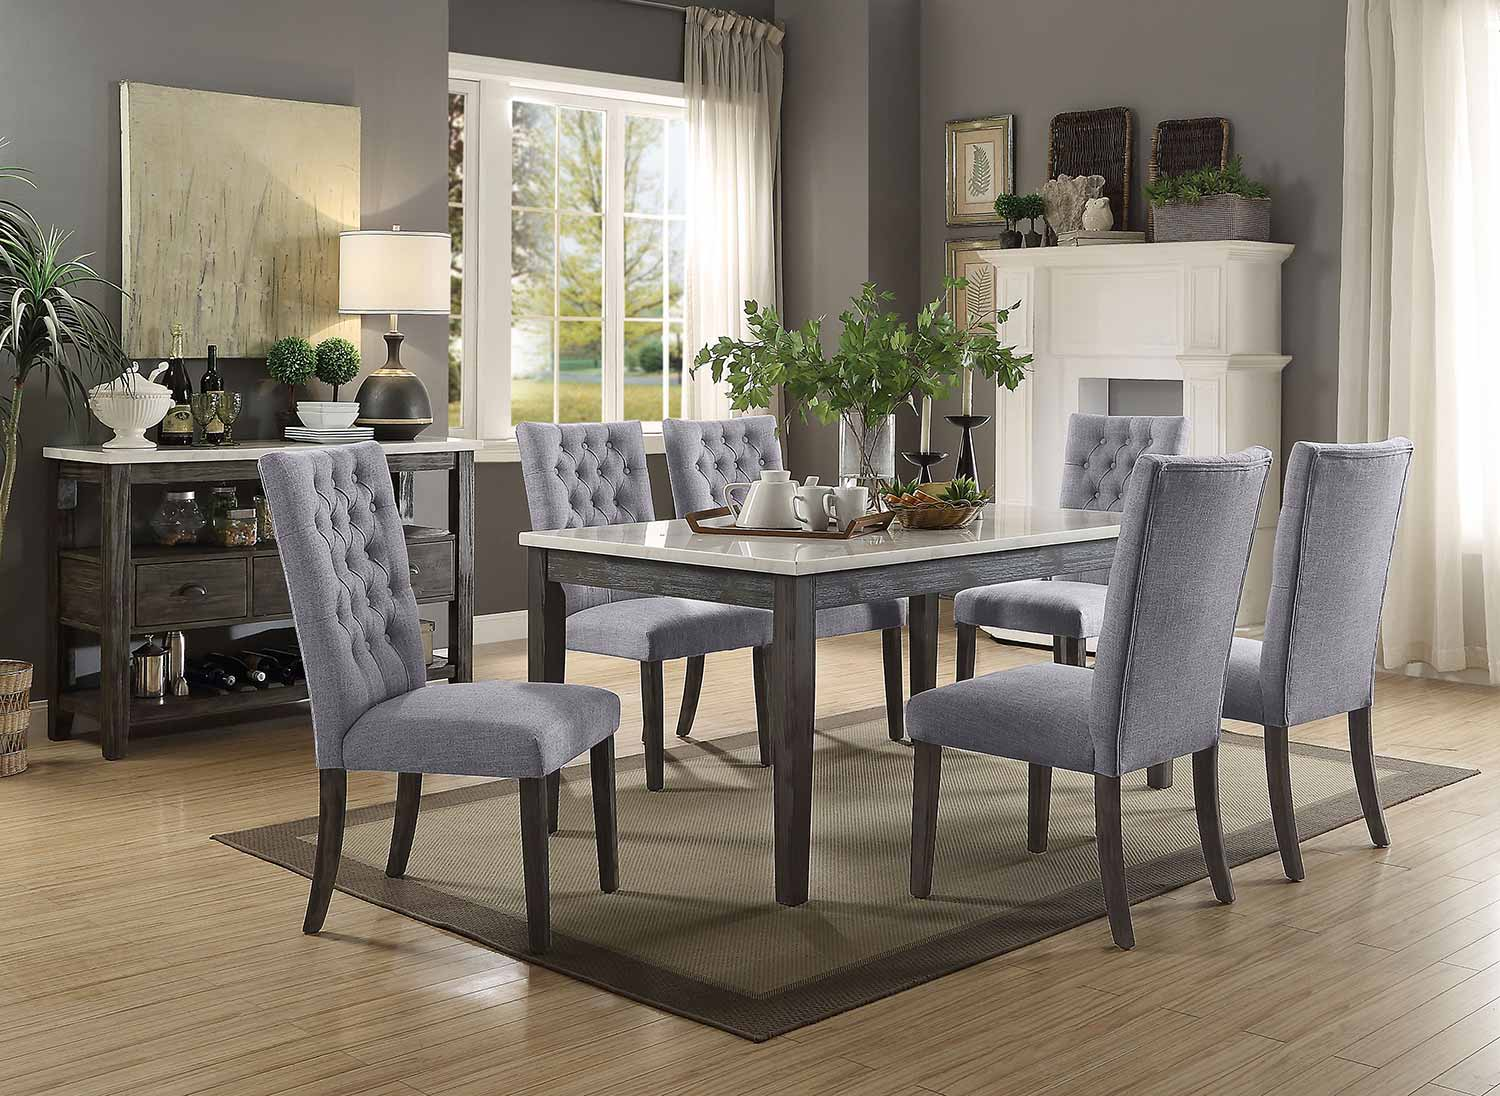 Acme Merel Dining Set - White Marble/Gray Oak